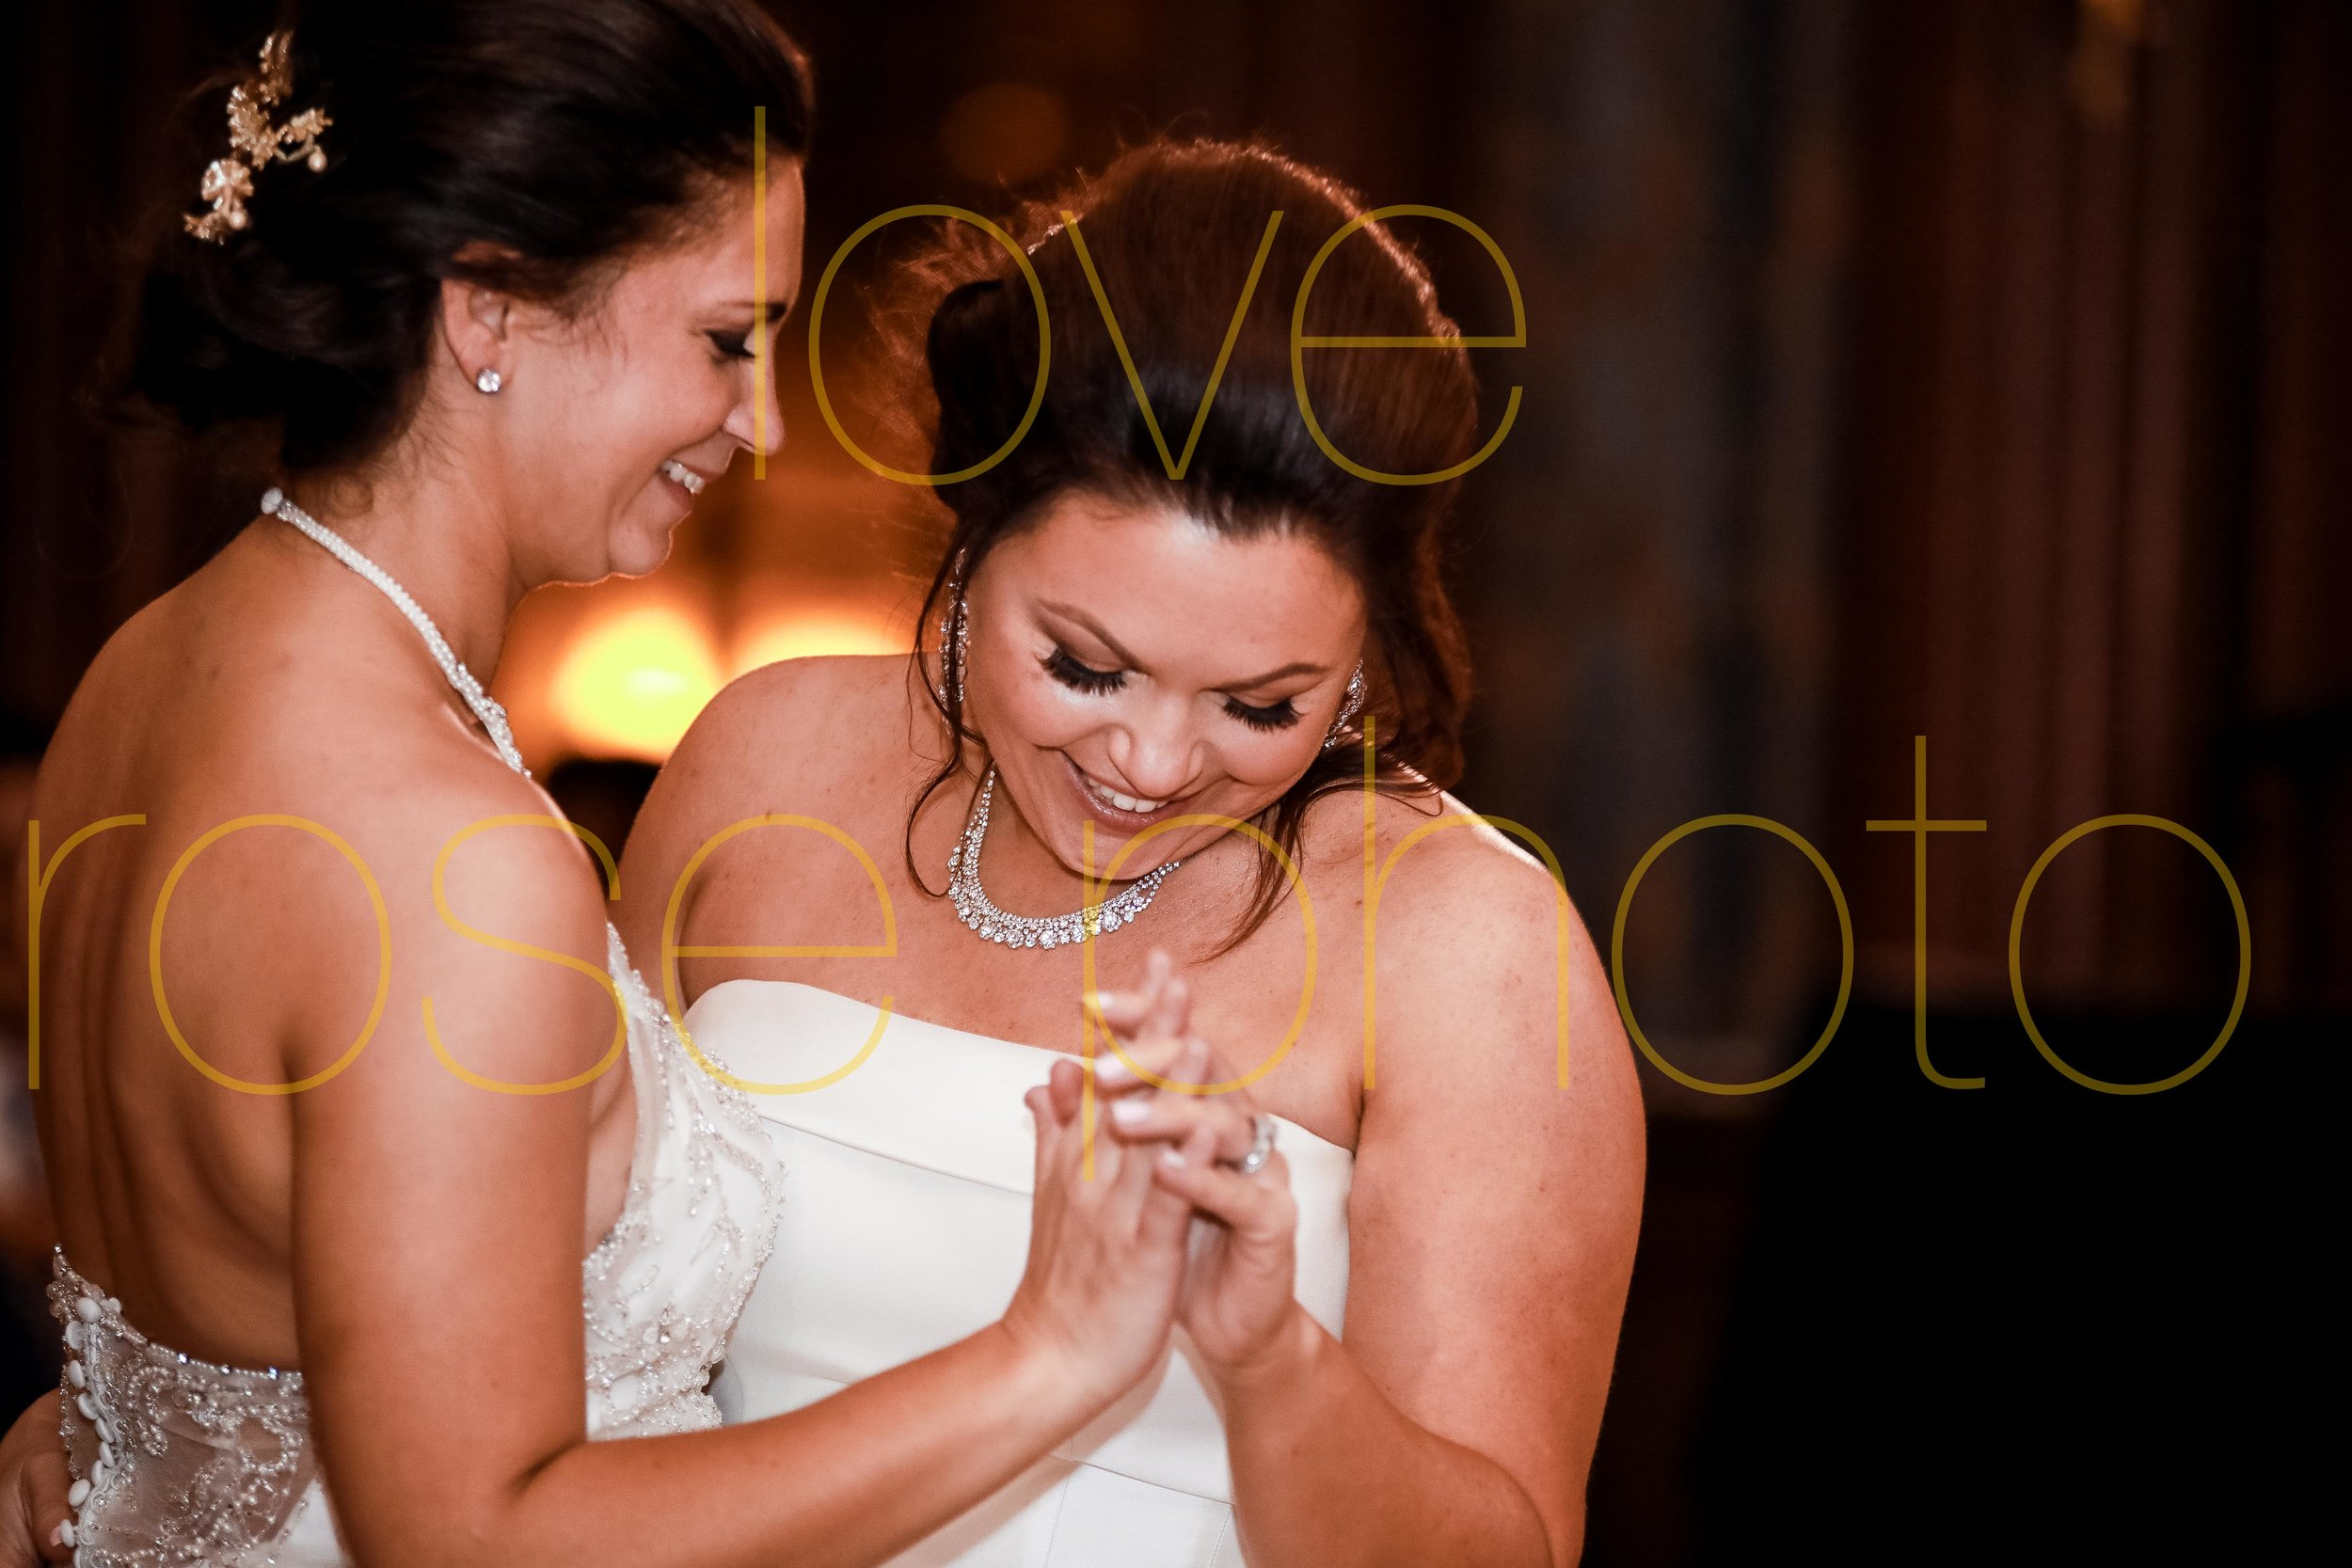 sophie + melissa love rose photo gay wedding chicago pride 2019 -80.jpg